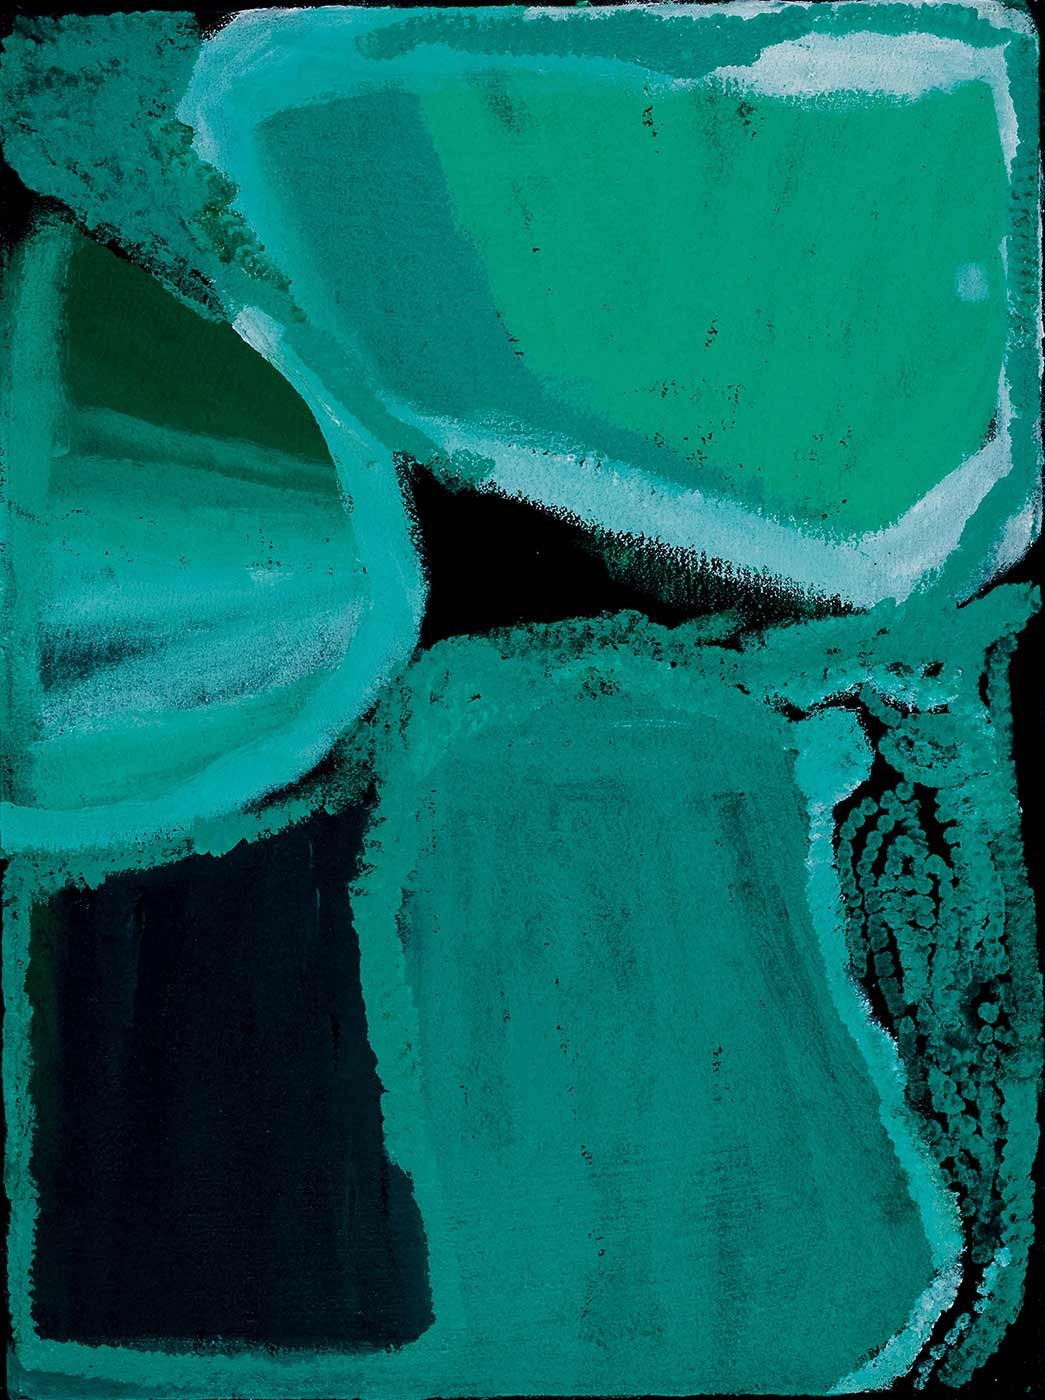 A rectangular painting on brown linen with three round edged shapes in aqua-turquoise extending from the edges into the middle of the painting with light coloured edges, on a black or dark navy background. The bottom right corner is filled with sinuous lines of turquoise dots. - click to view larger image